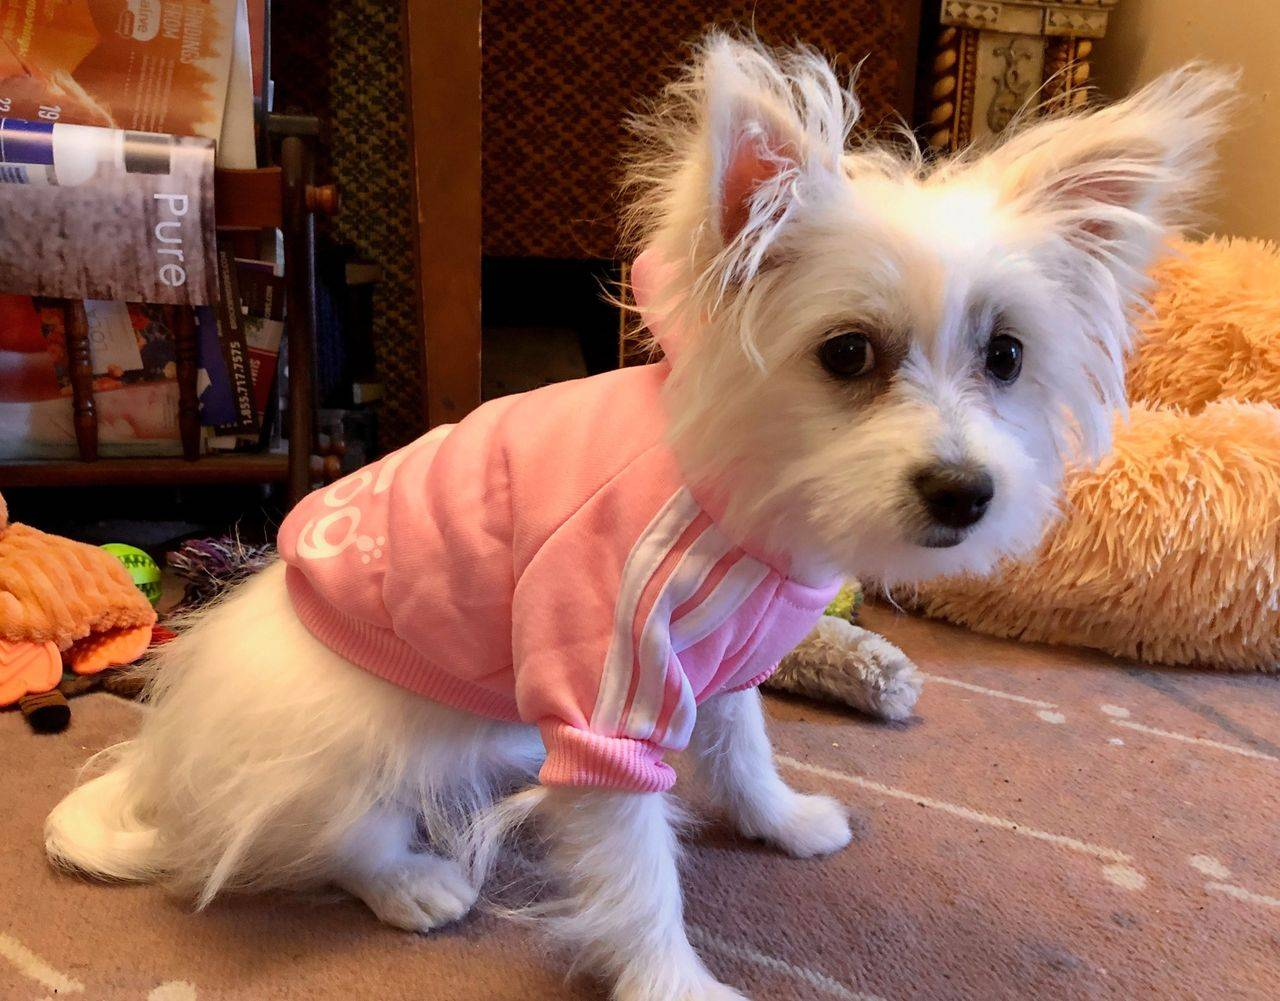 How to choose the right clothes for your dog?